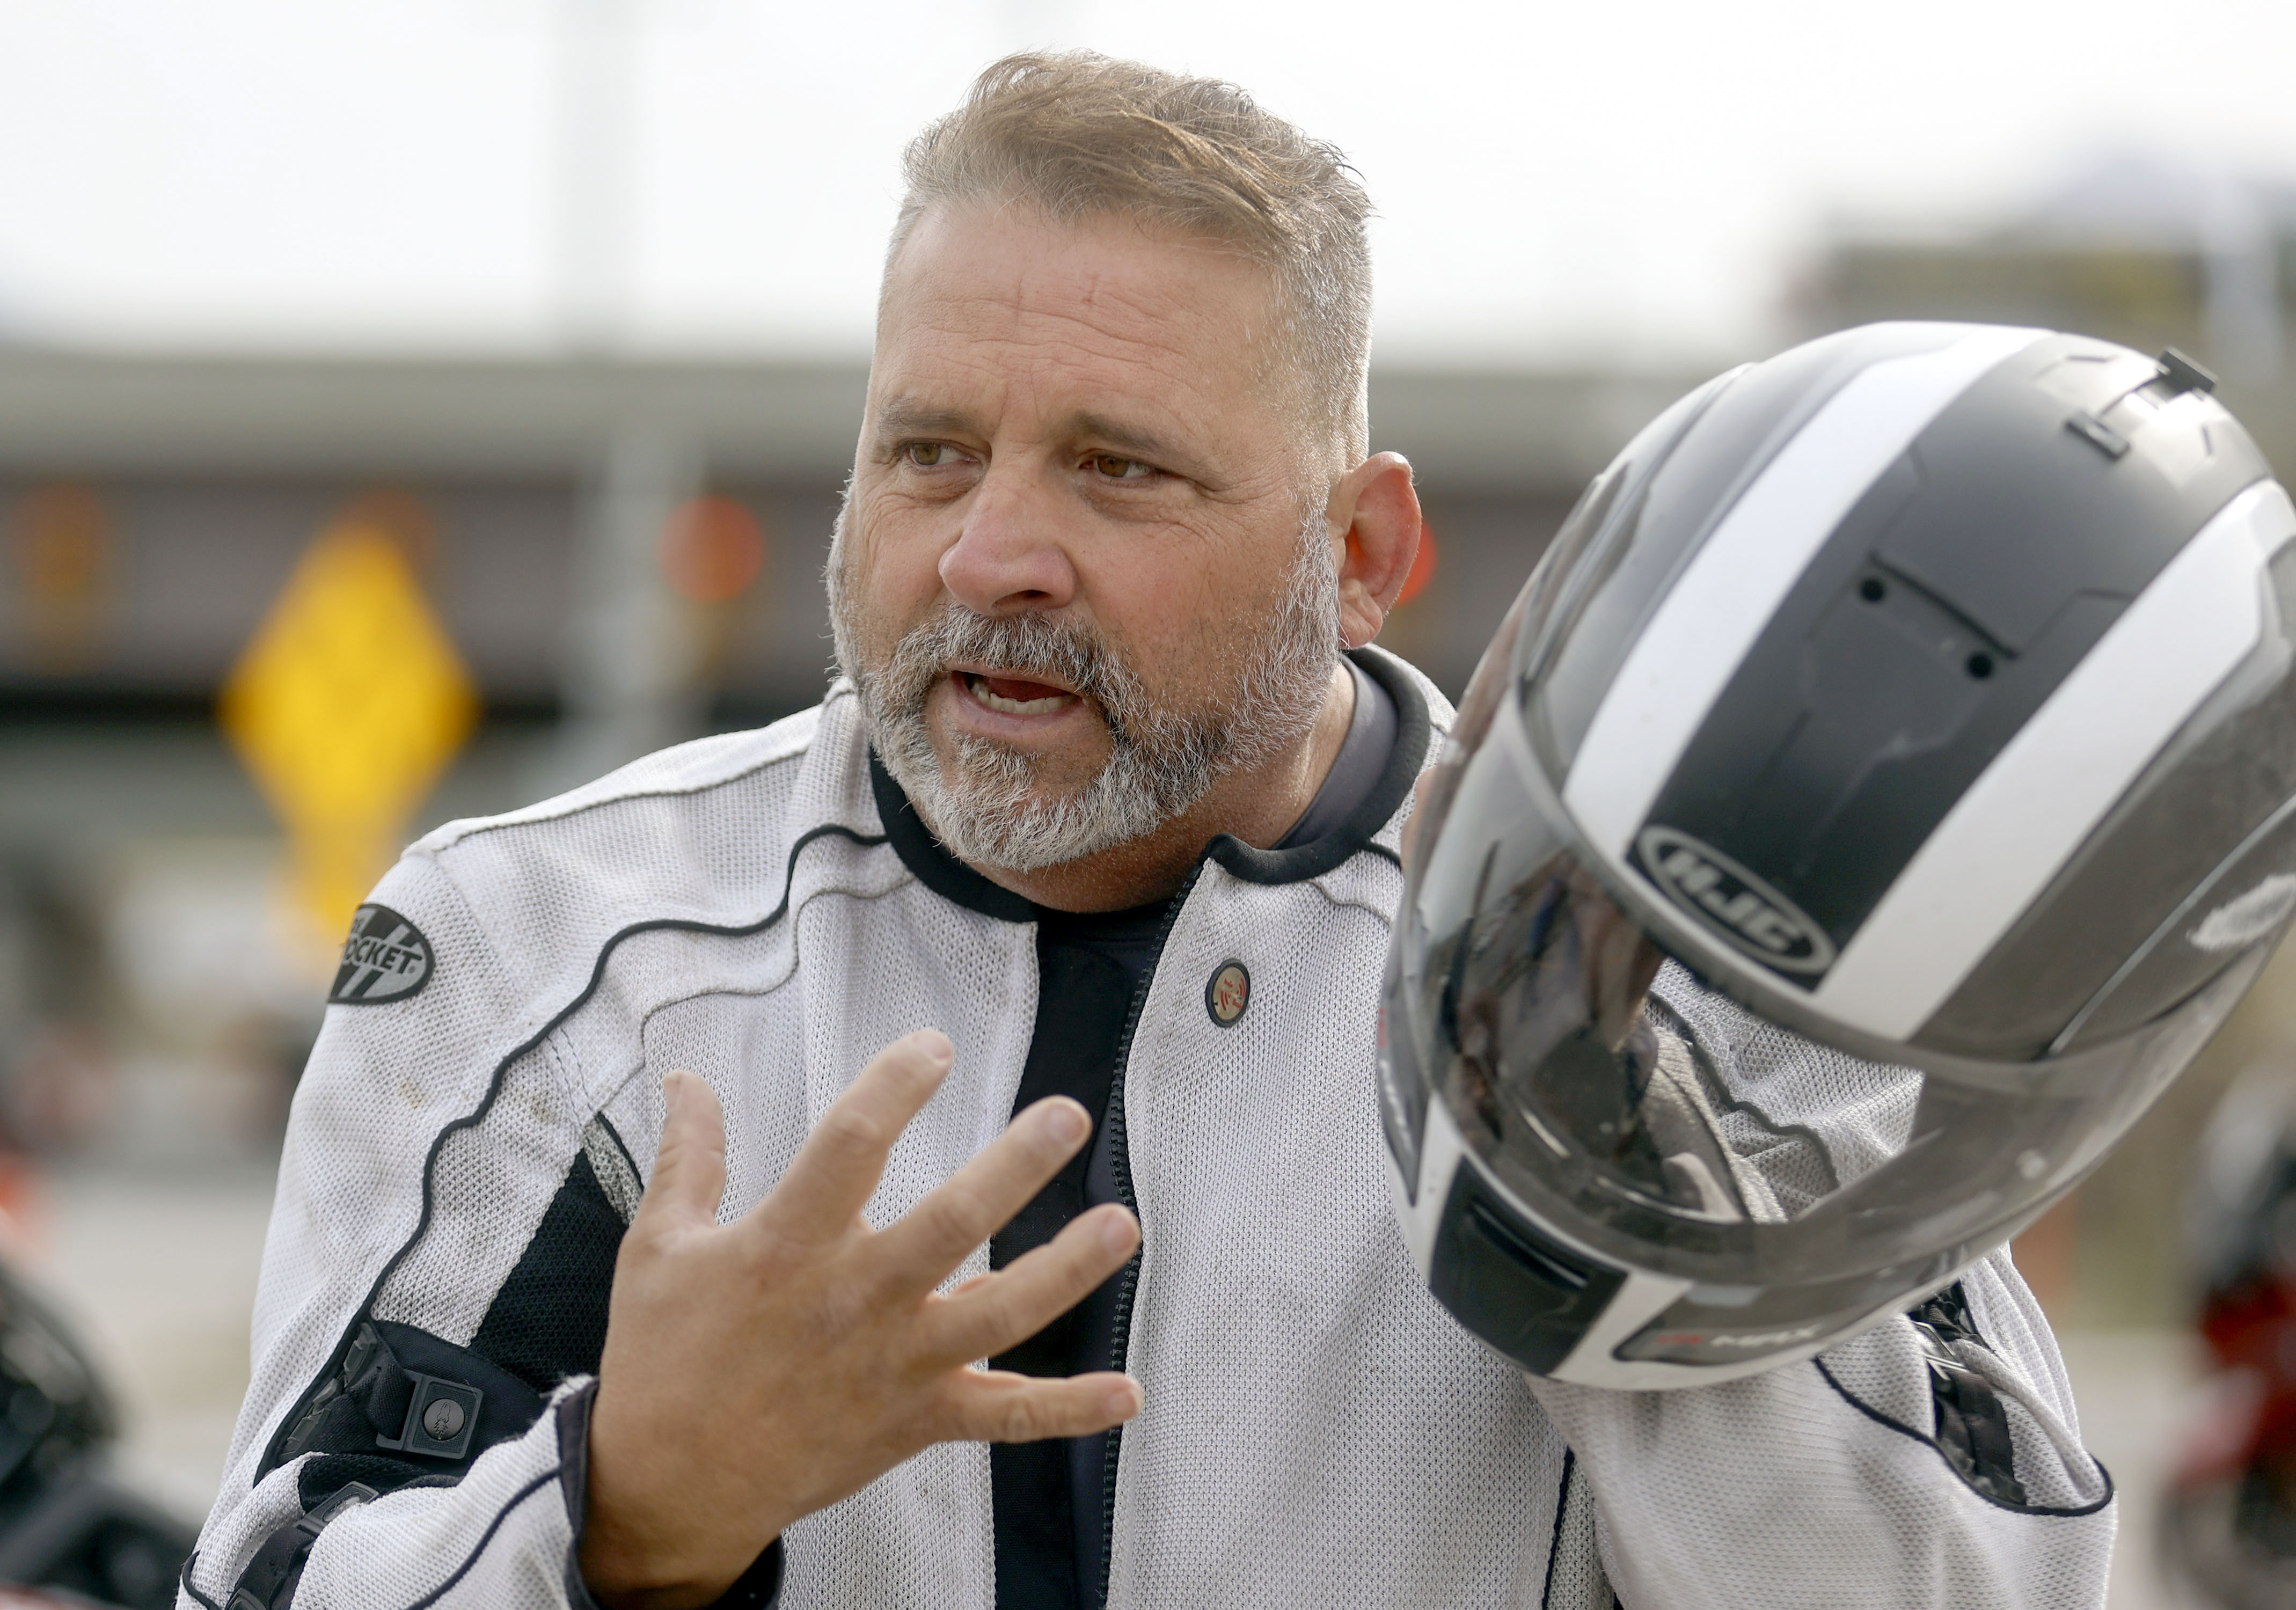 Joe Pereztalks about a motorcycle crash he was in during a press event to launch the Ride to Live motorcycle safety campaign outside of Harrison Eurosports in Sandy on Wednesday, April 21, 2021.